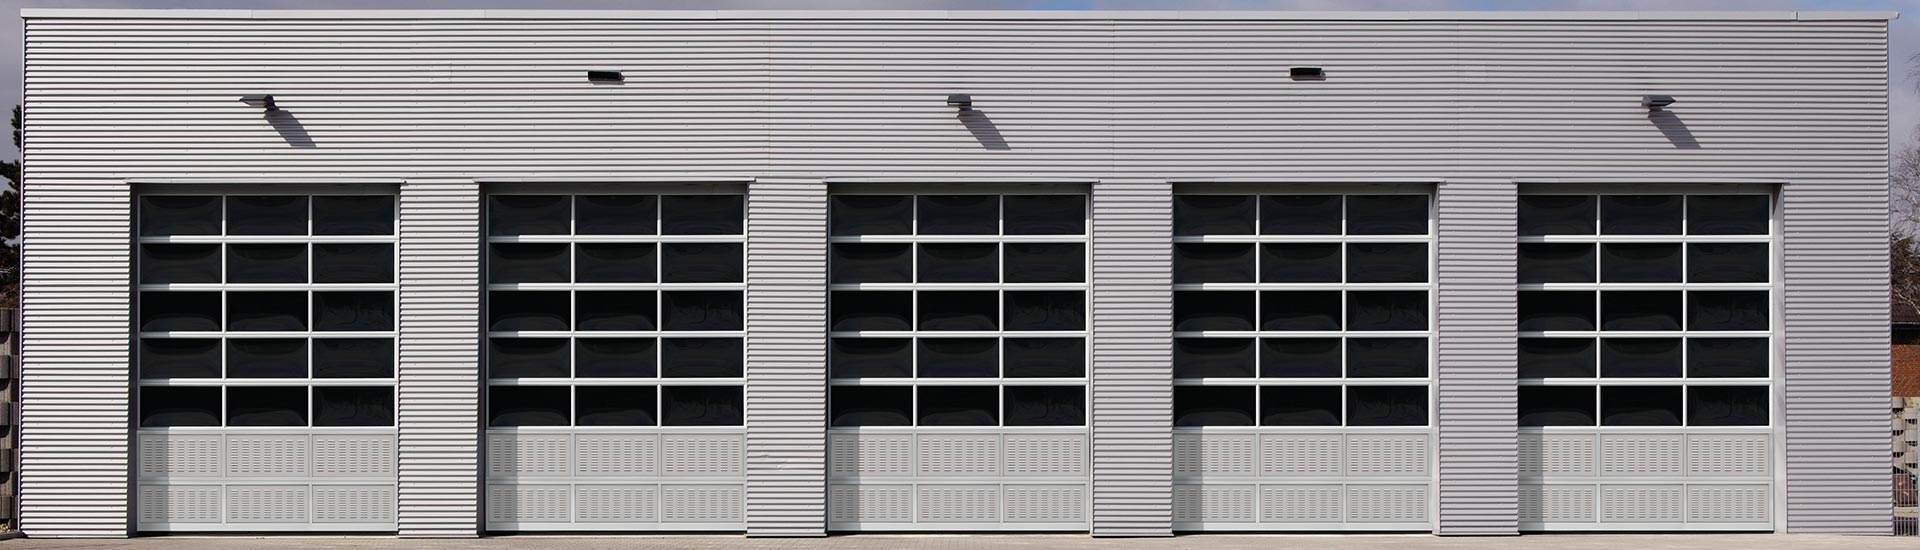 commercial ny garage gasport inc gallery woodworks door sunrise overhead